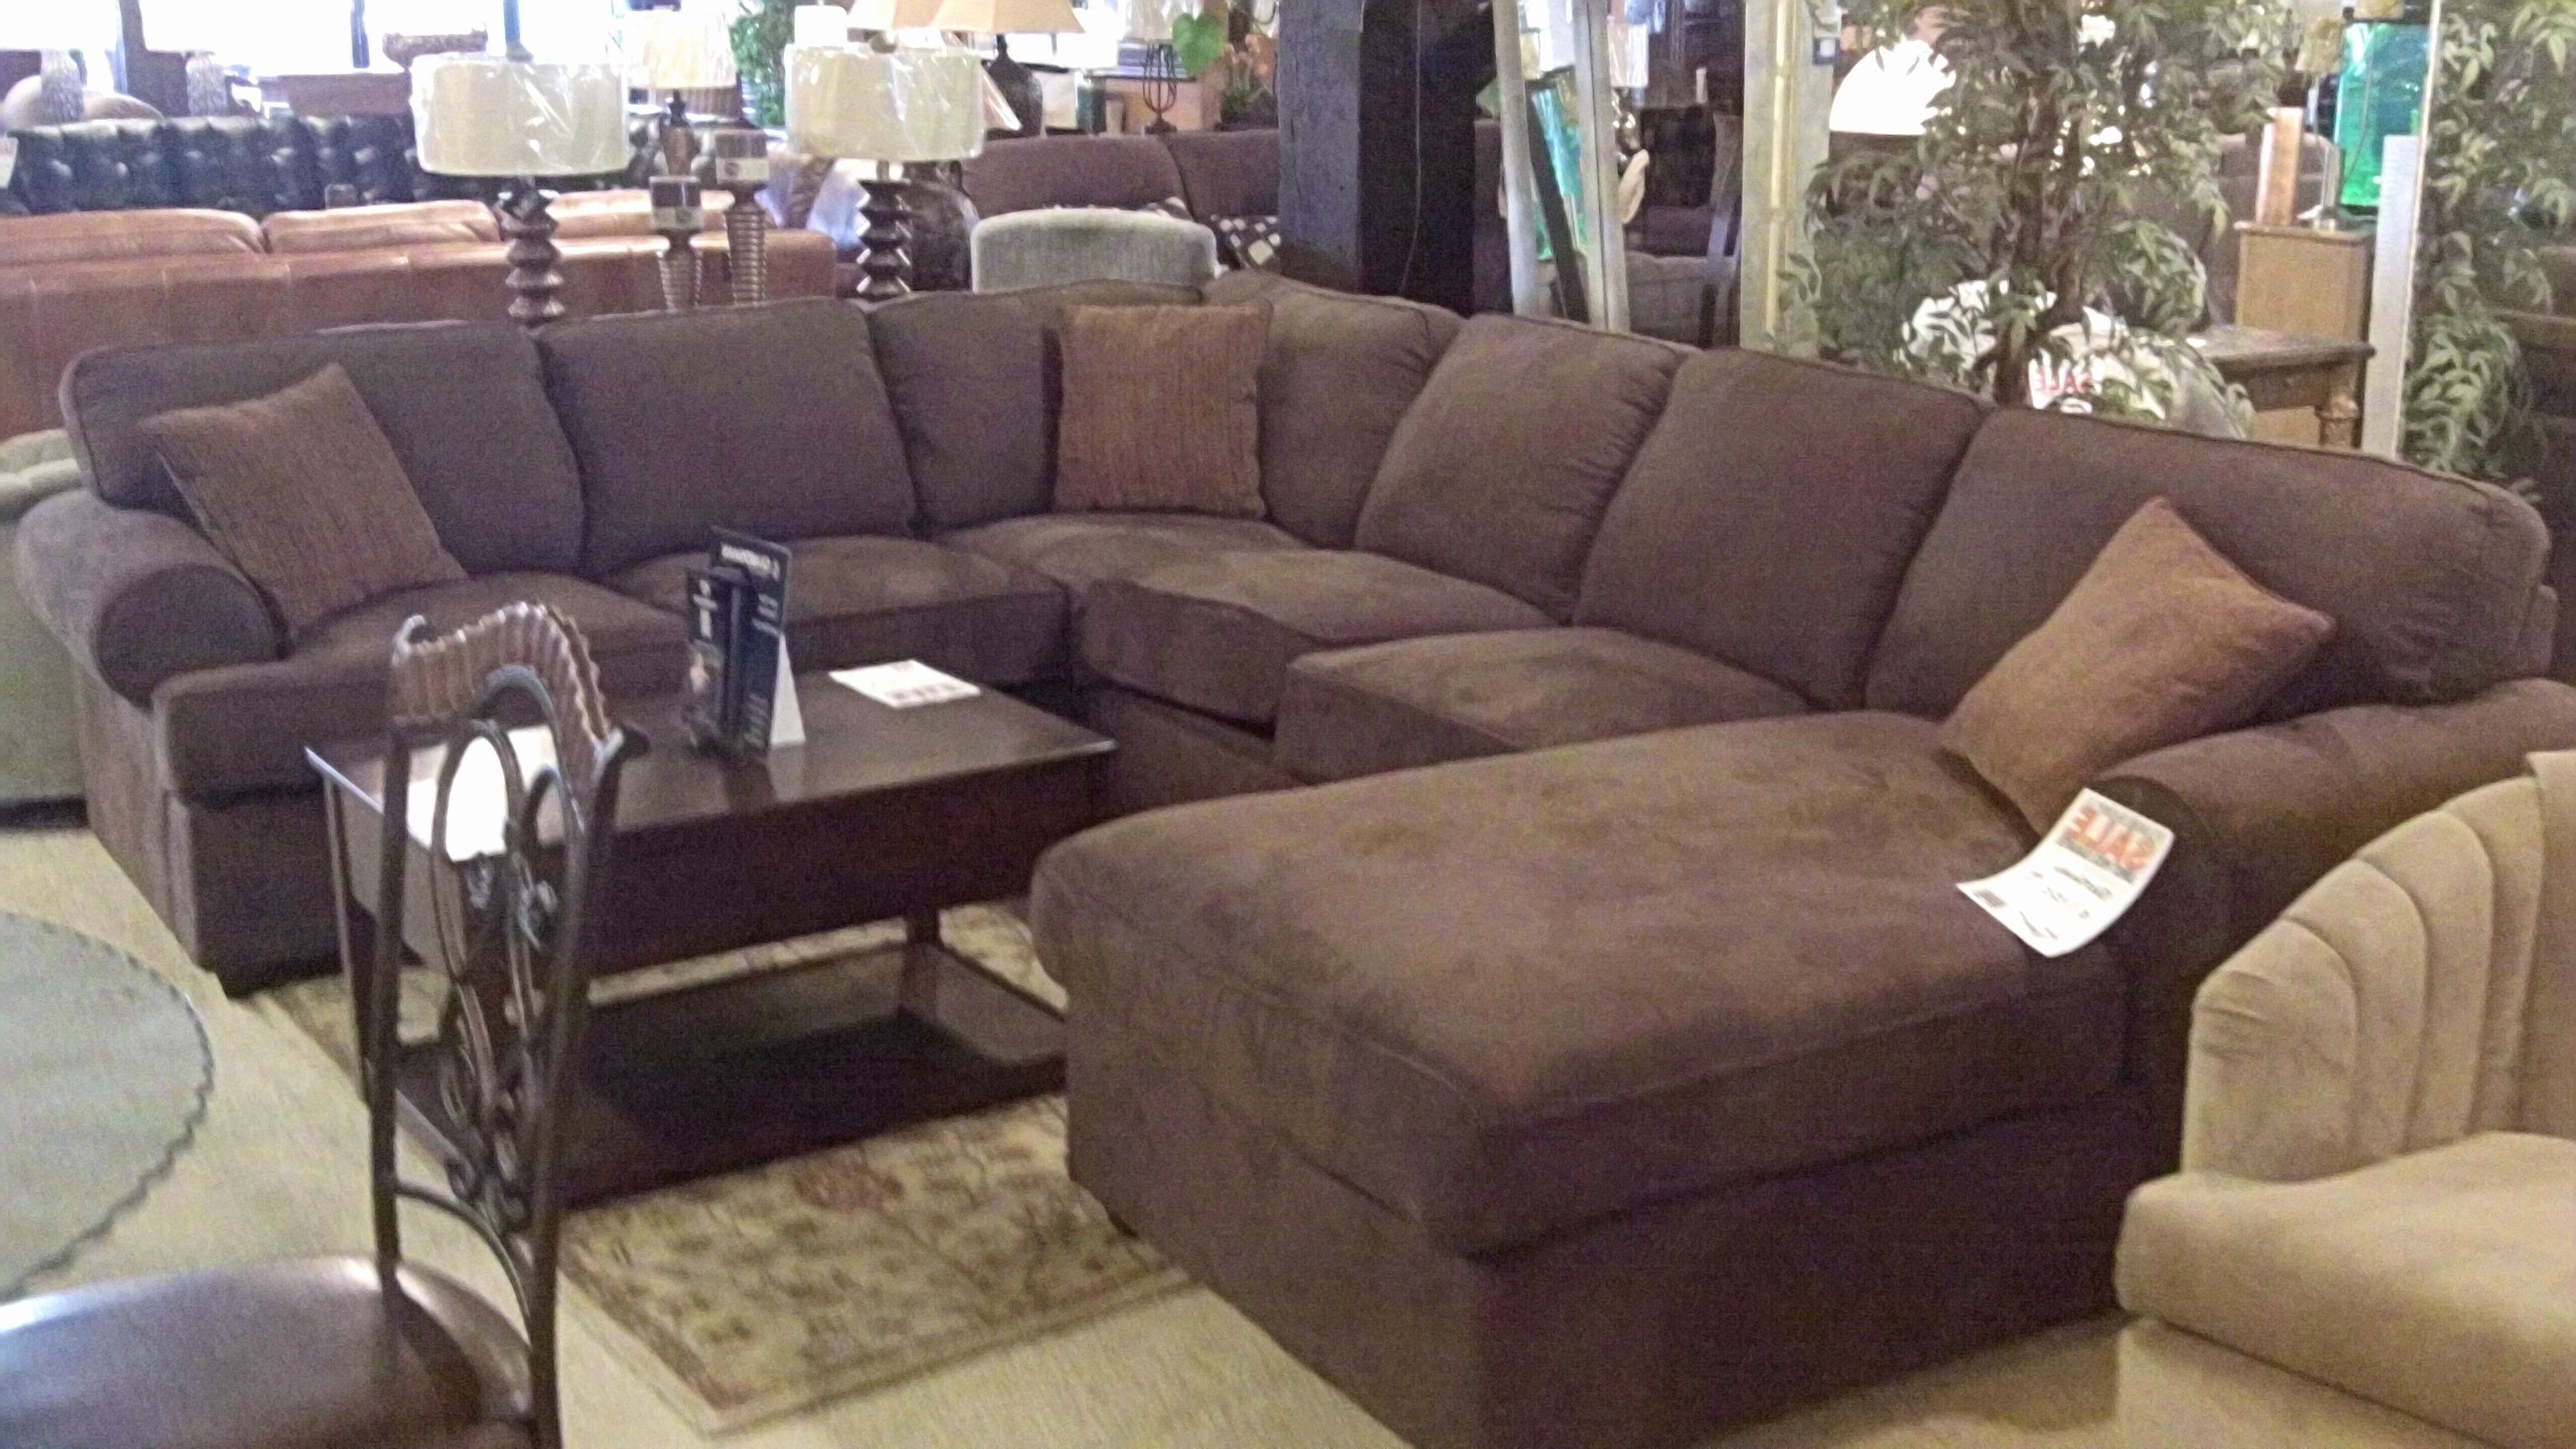 Down Filled Sofas For 2017 Luxury Down Filled Sectional Sofa 2018 – Couches And Sofas Ideas (View 11 of 15)